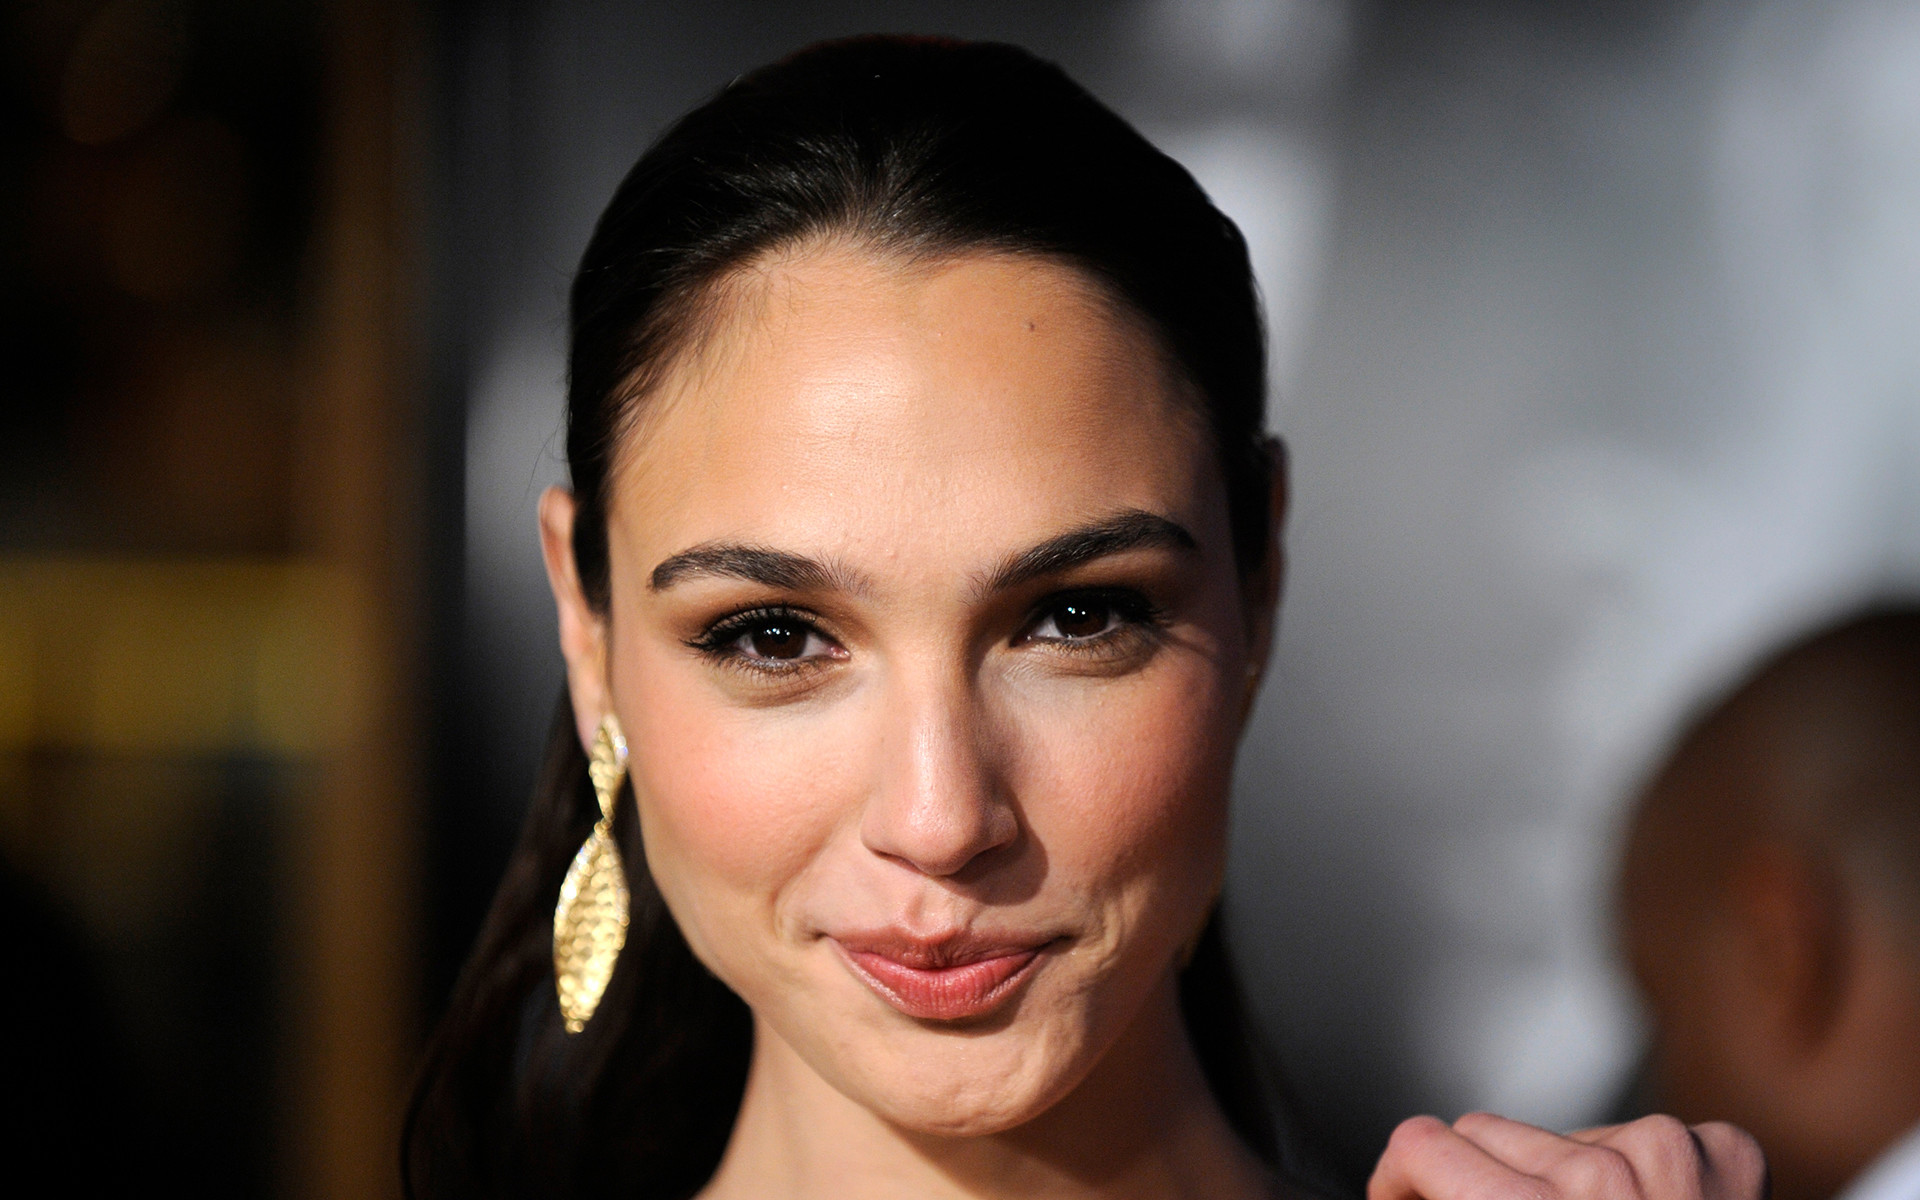 1920x1200 free screensaver wallpapers for gal gadot (Javonte Archibald